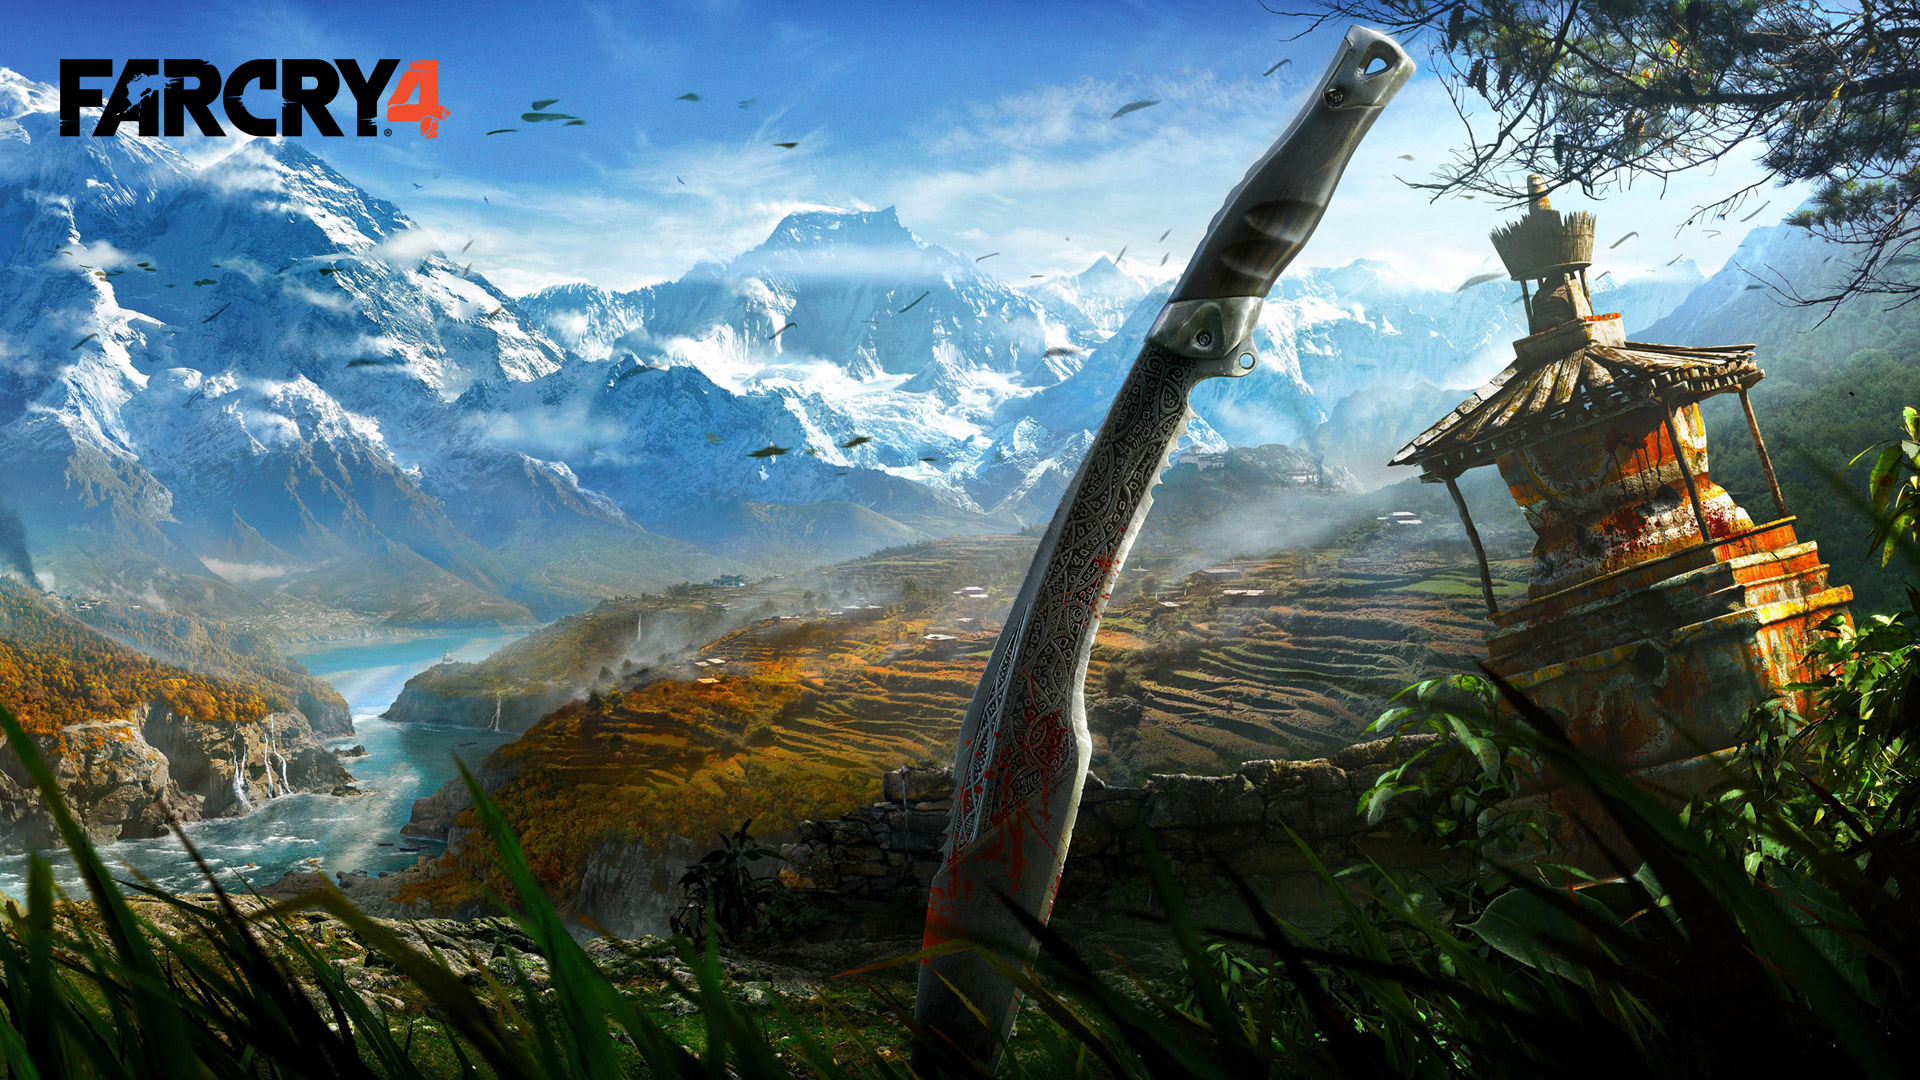 Free Far Cry 4 Wallpaper in 1920x1080